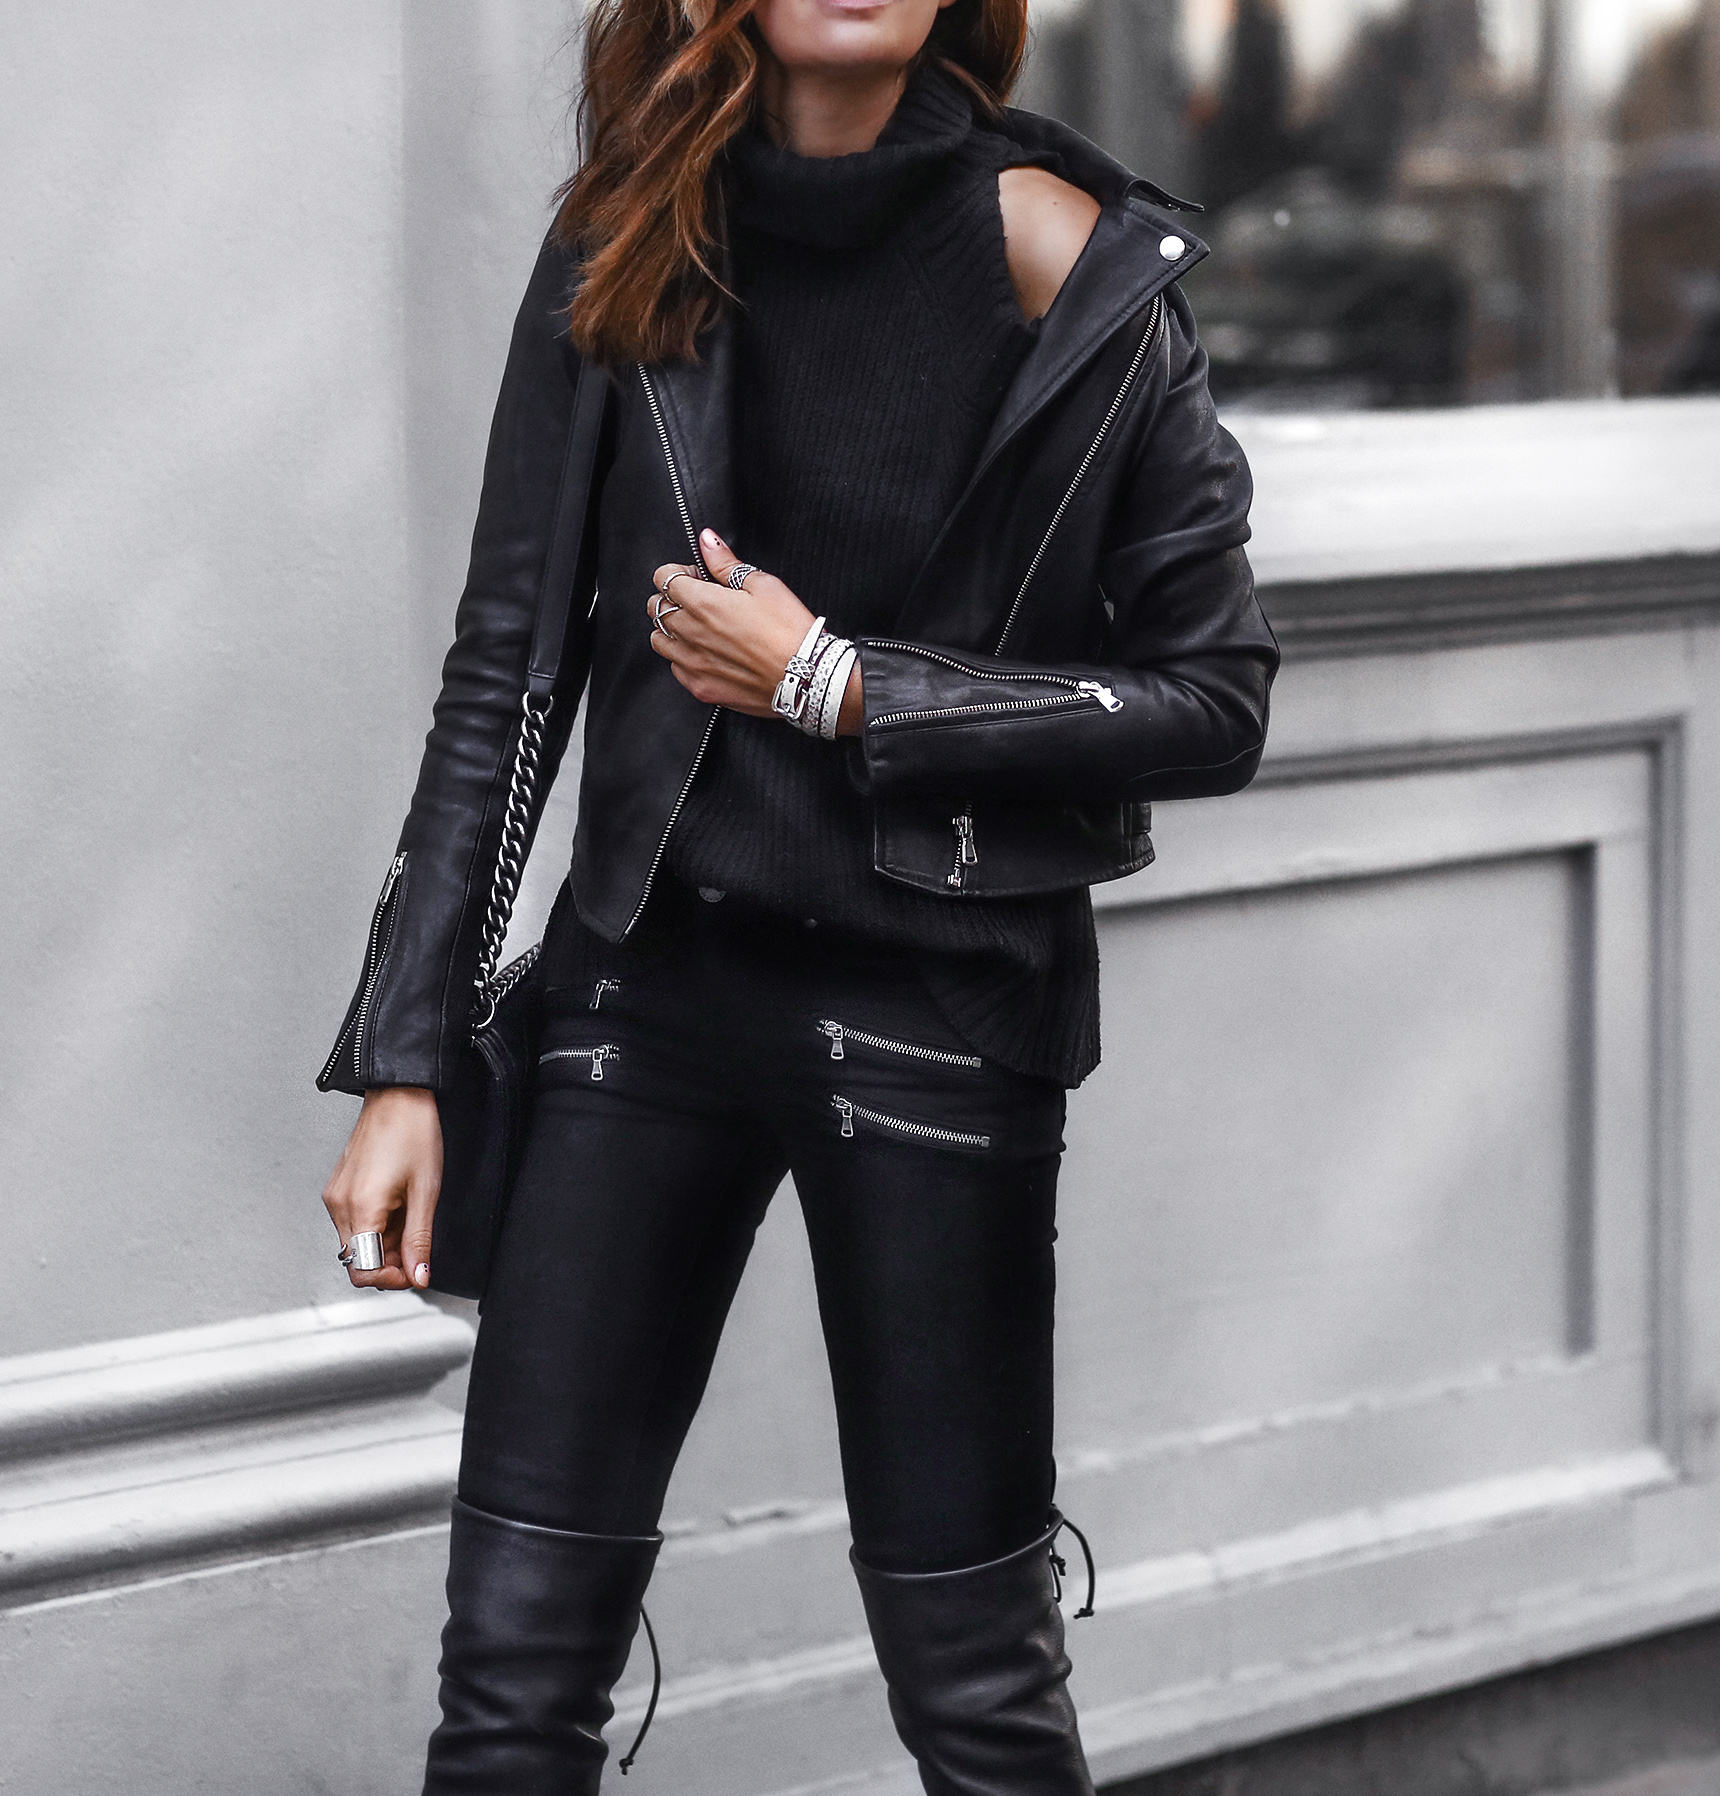 black leather jacket, black skinny jeans, black leather over the knee boots